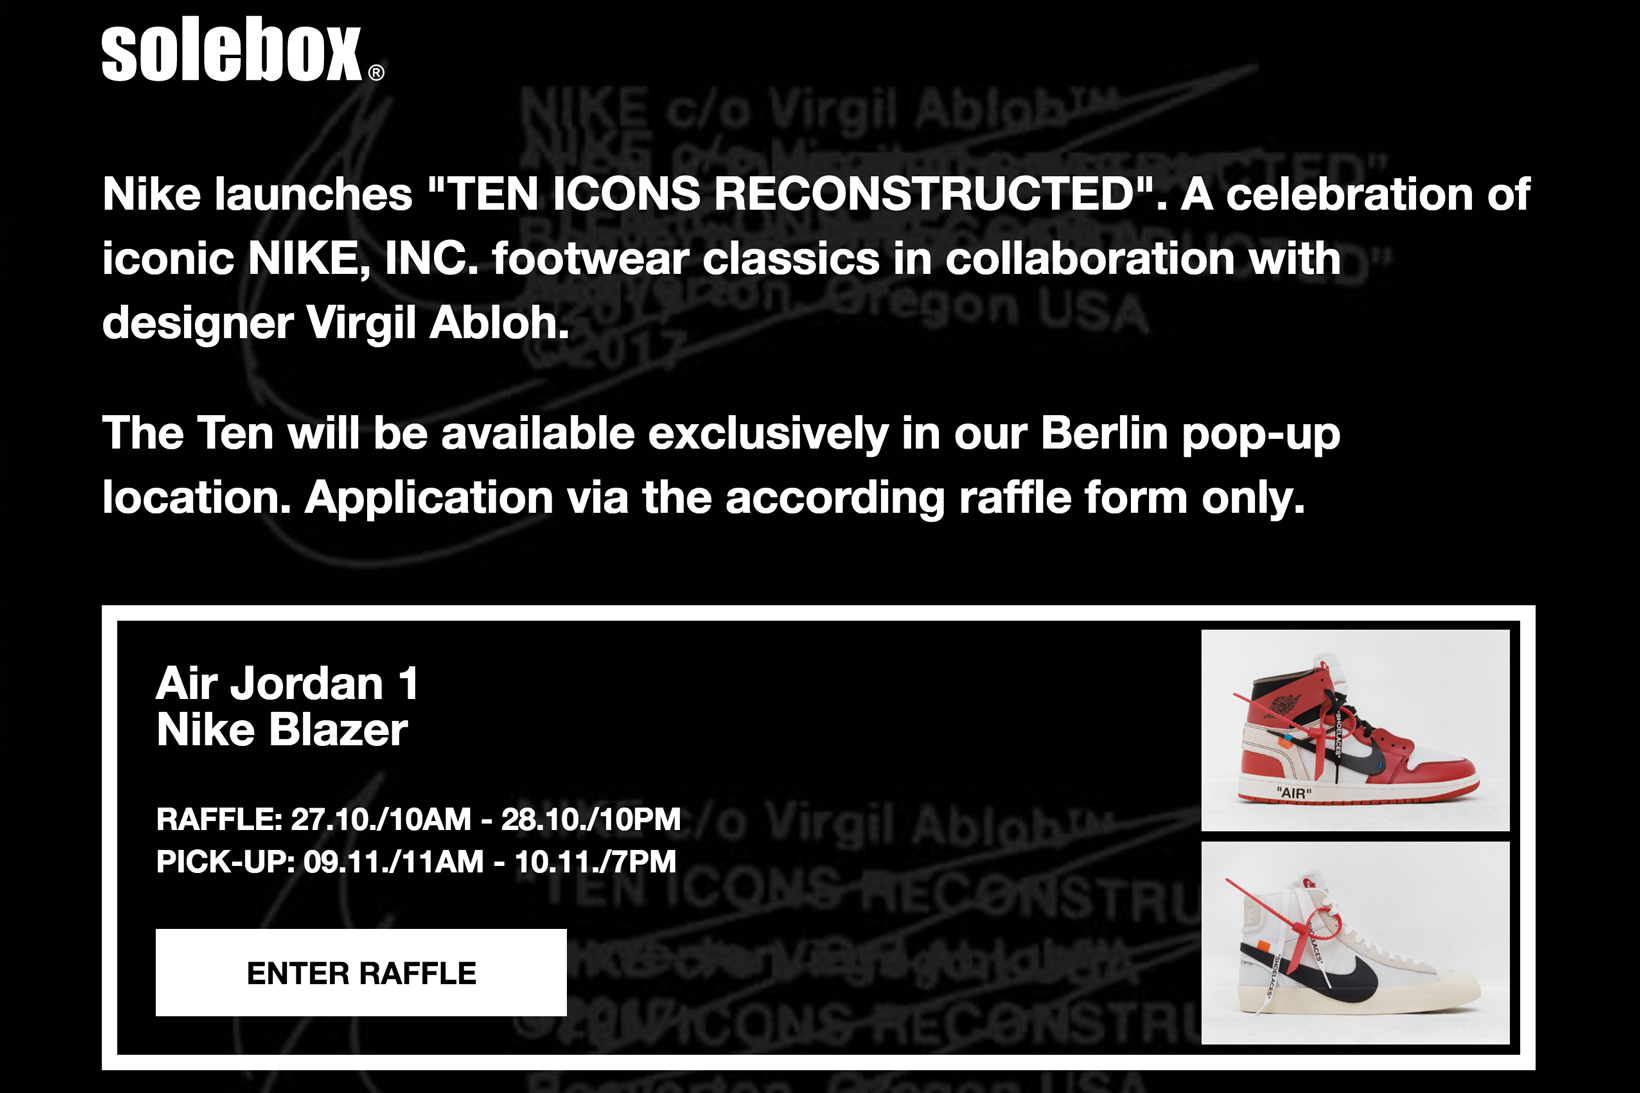 8d6f314e4a06 Berlin retailer solebox is raffling off the first two iterations at its  Berlin location